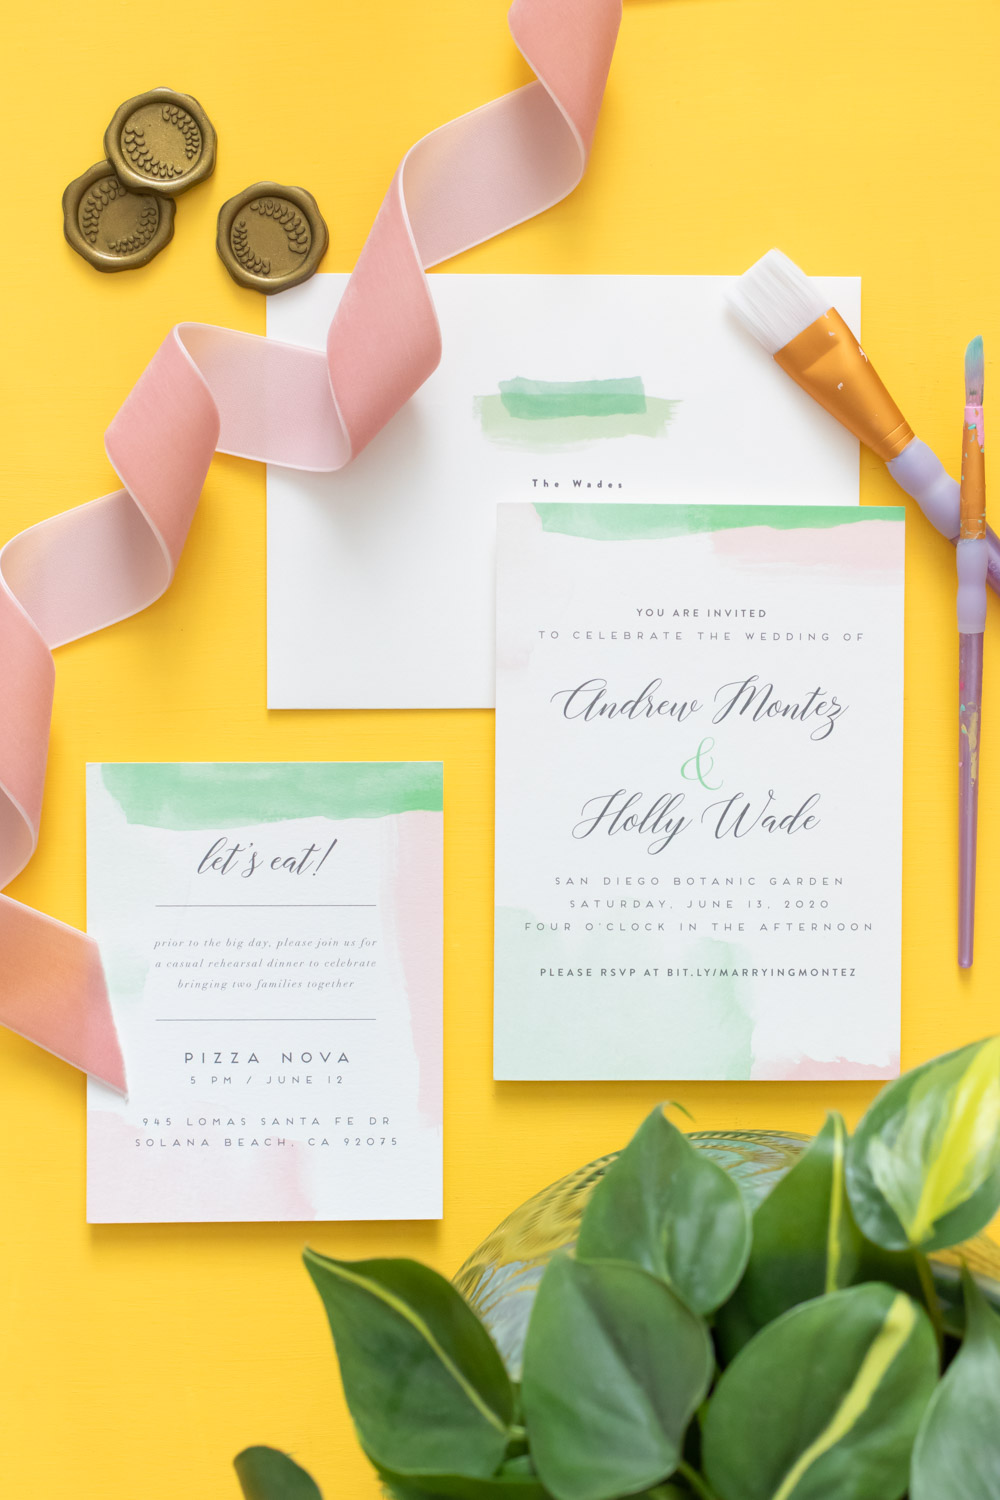 Minted watercolor wedding invitations on yellow background